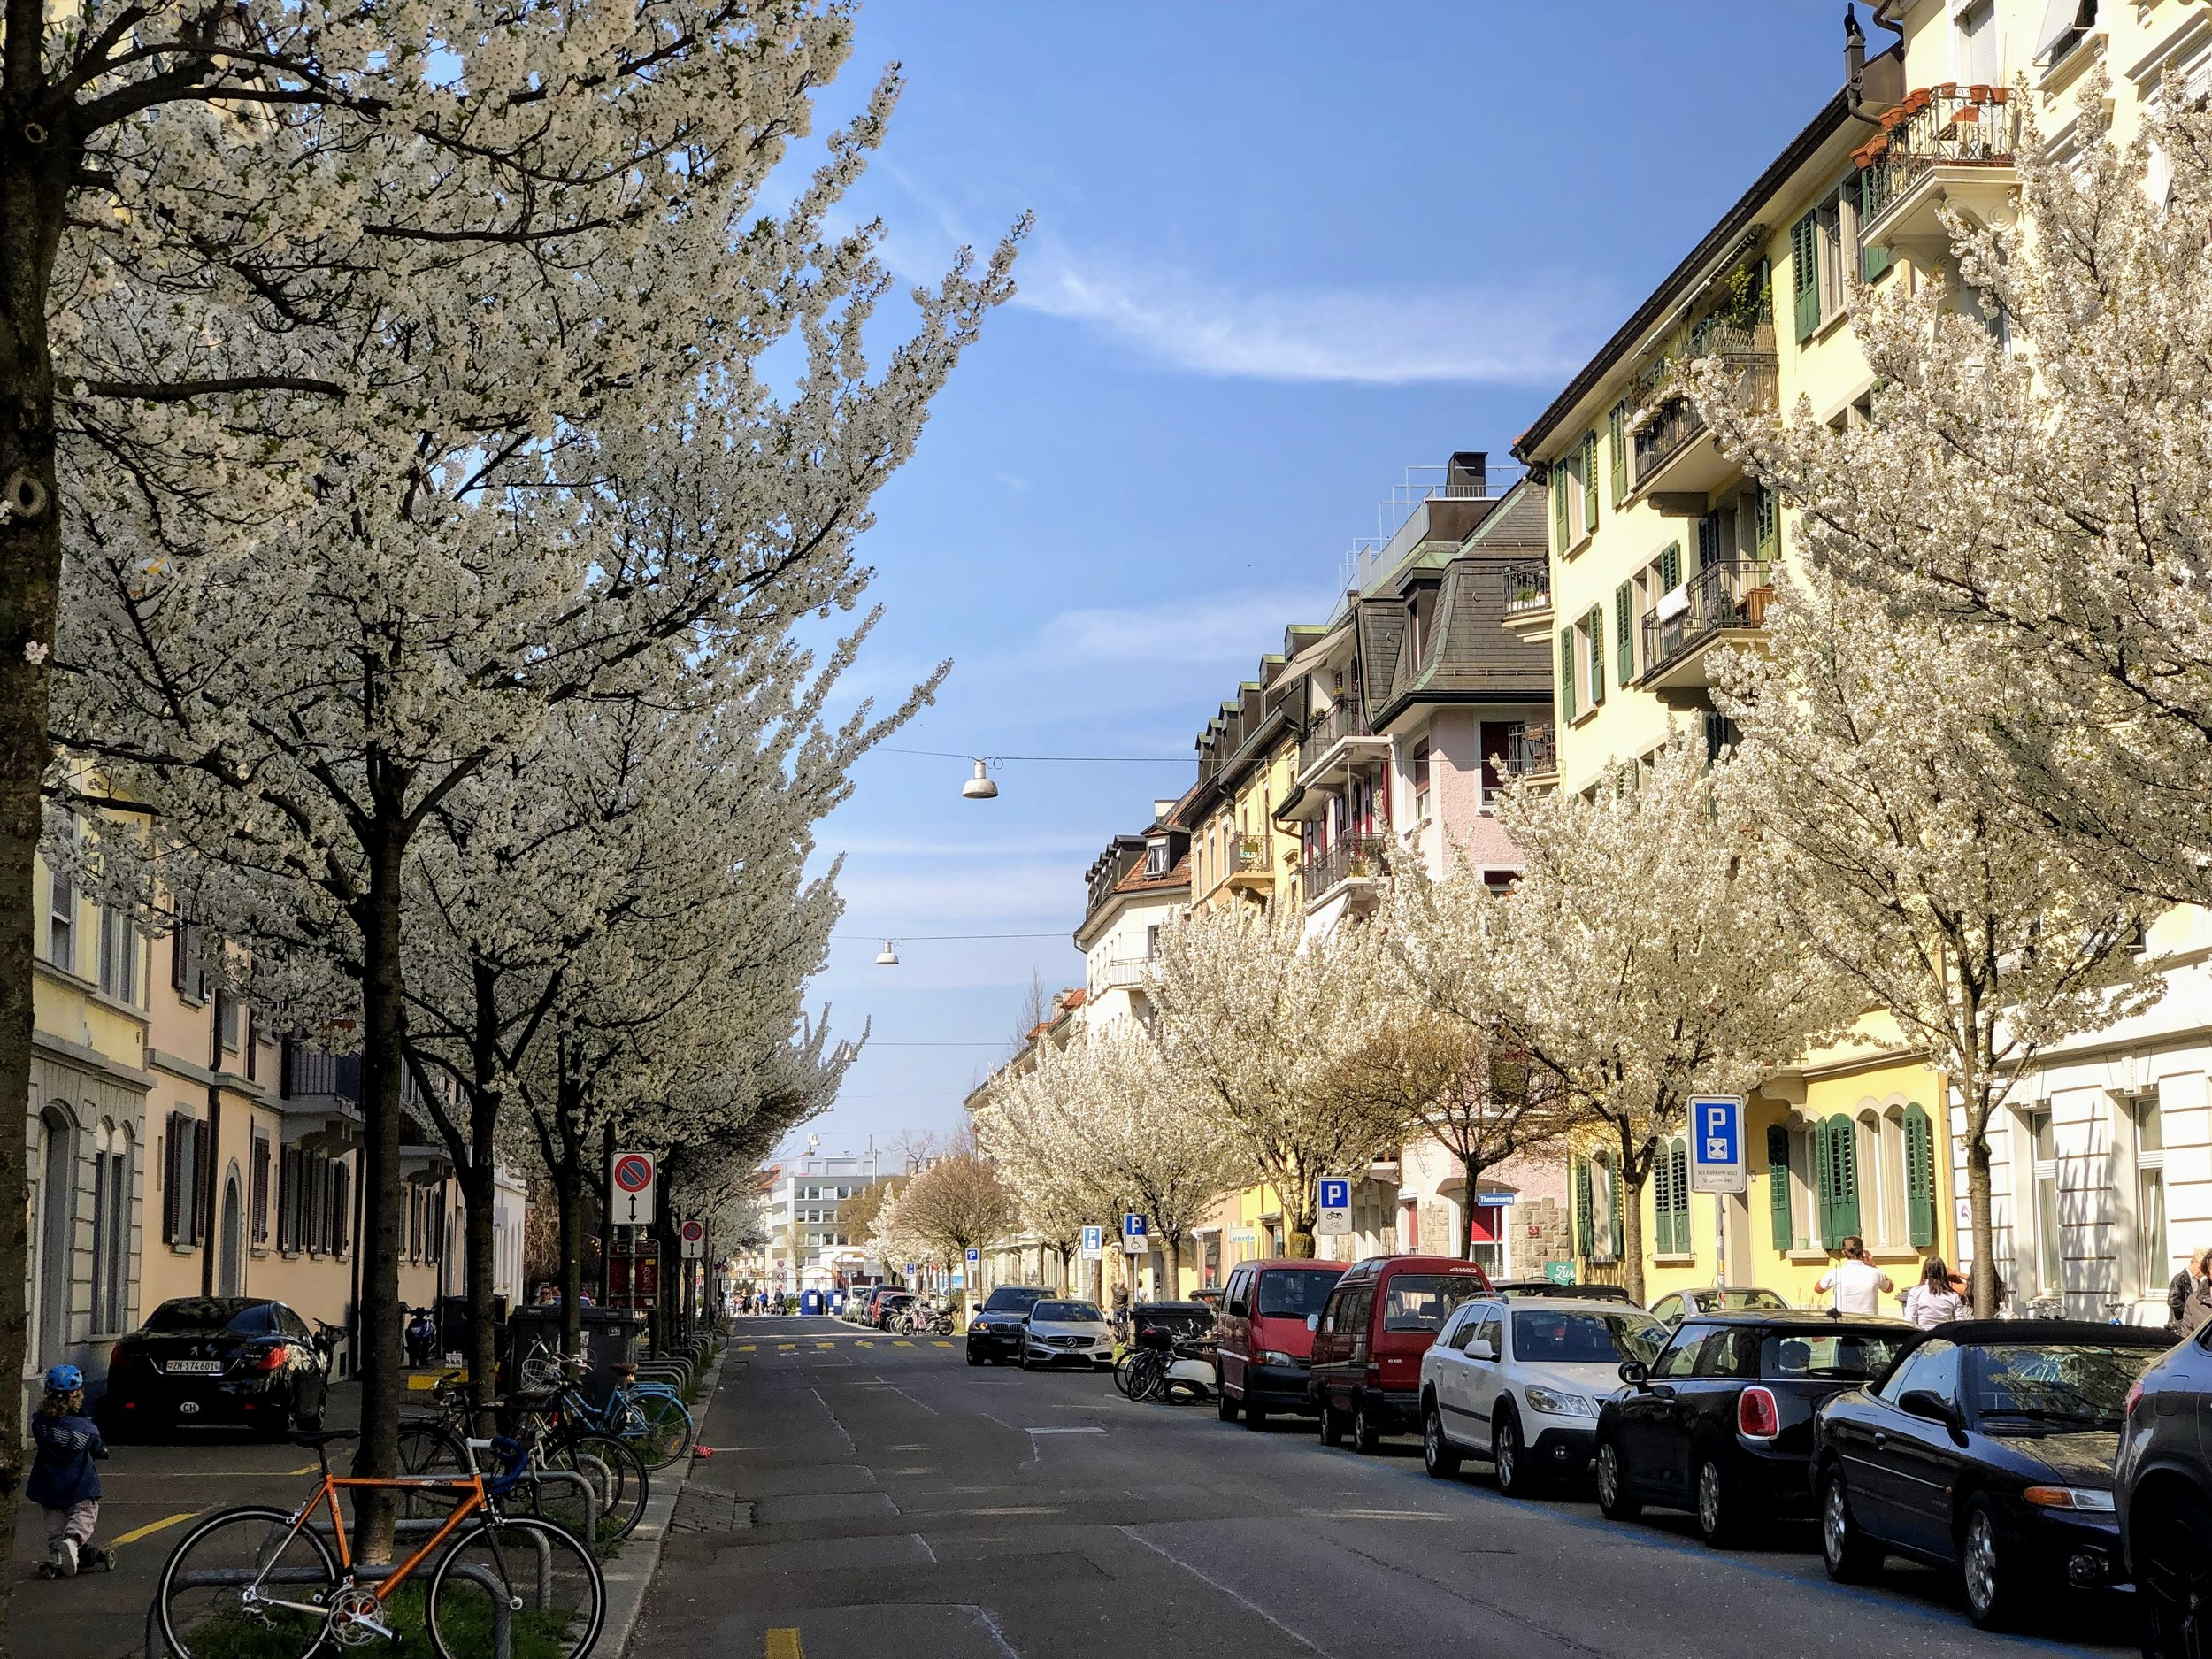 Cherry blossoms in Kreis 4 in the spring in Zurich